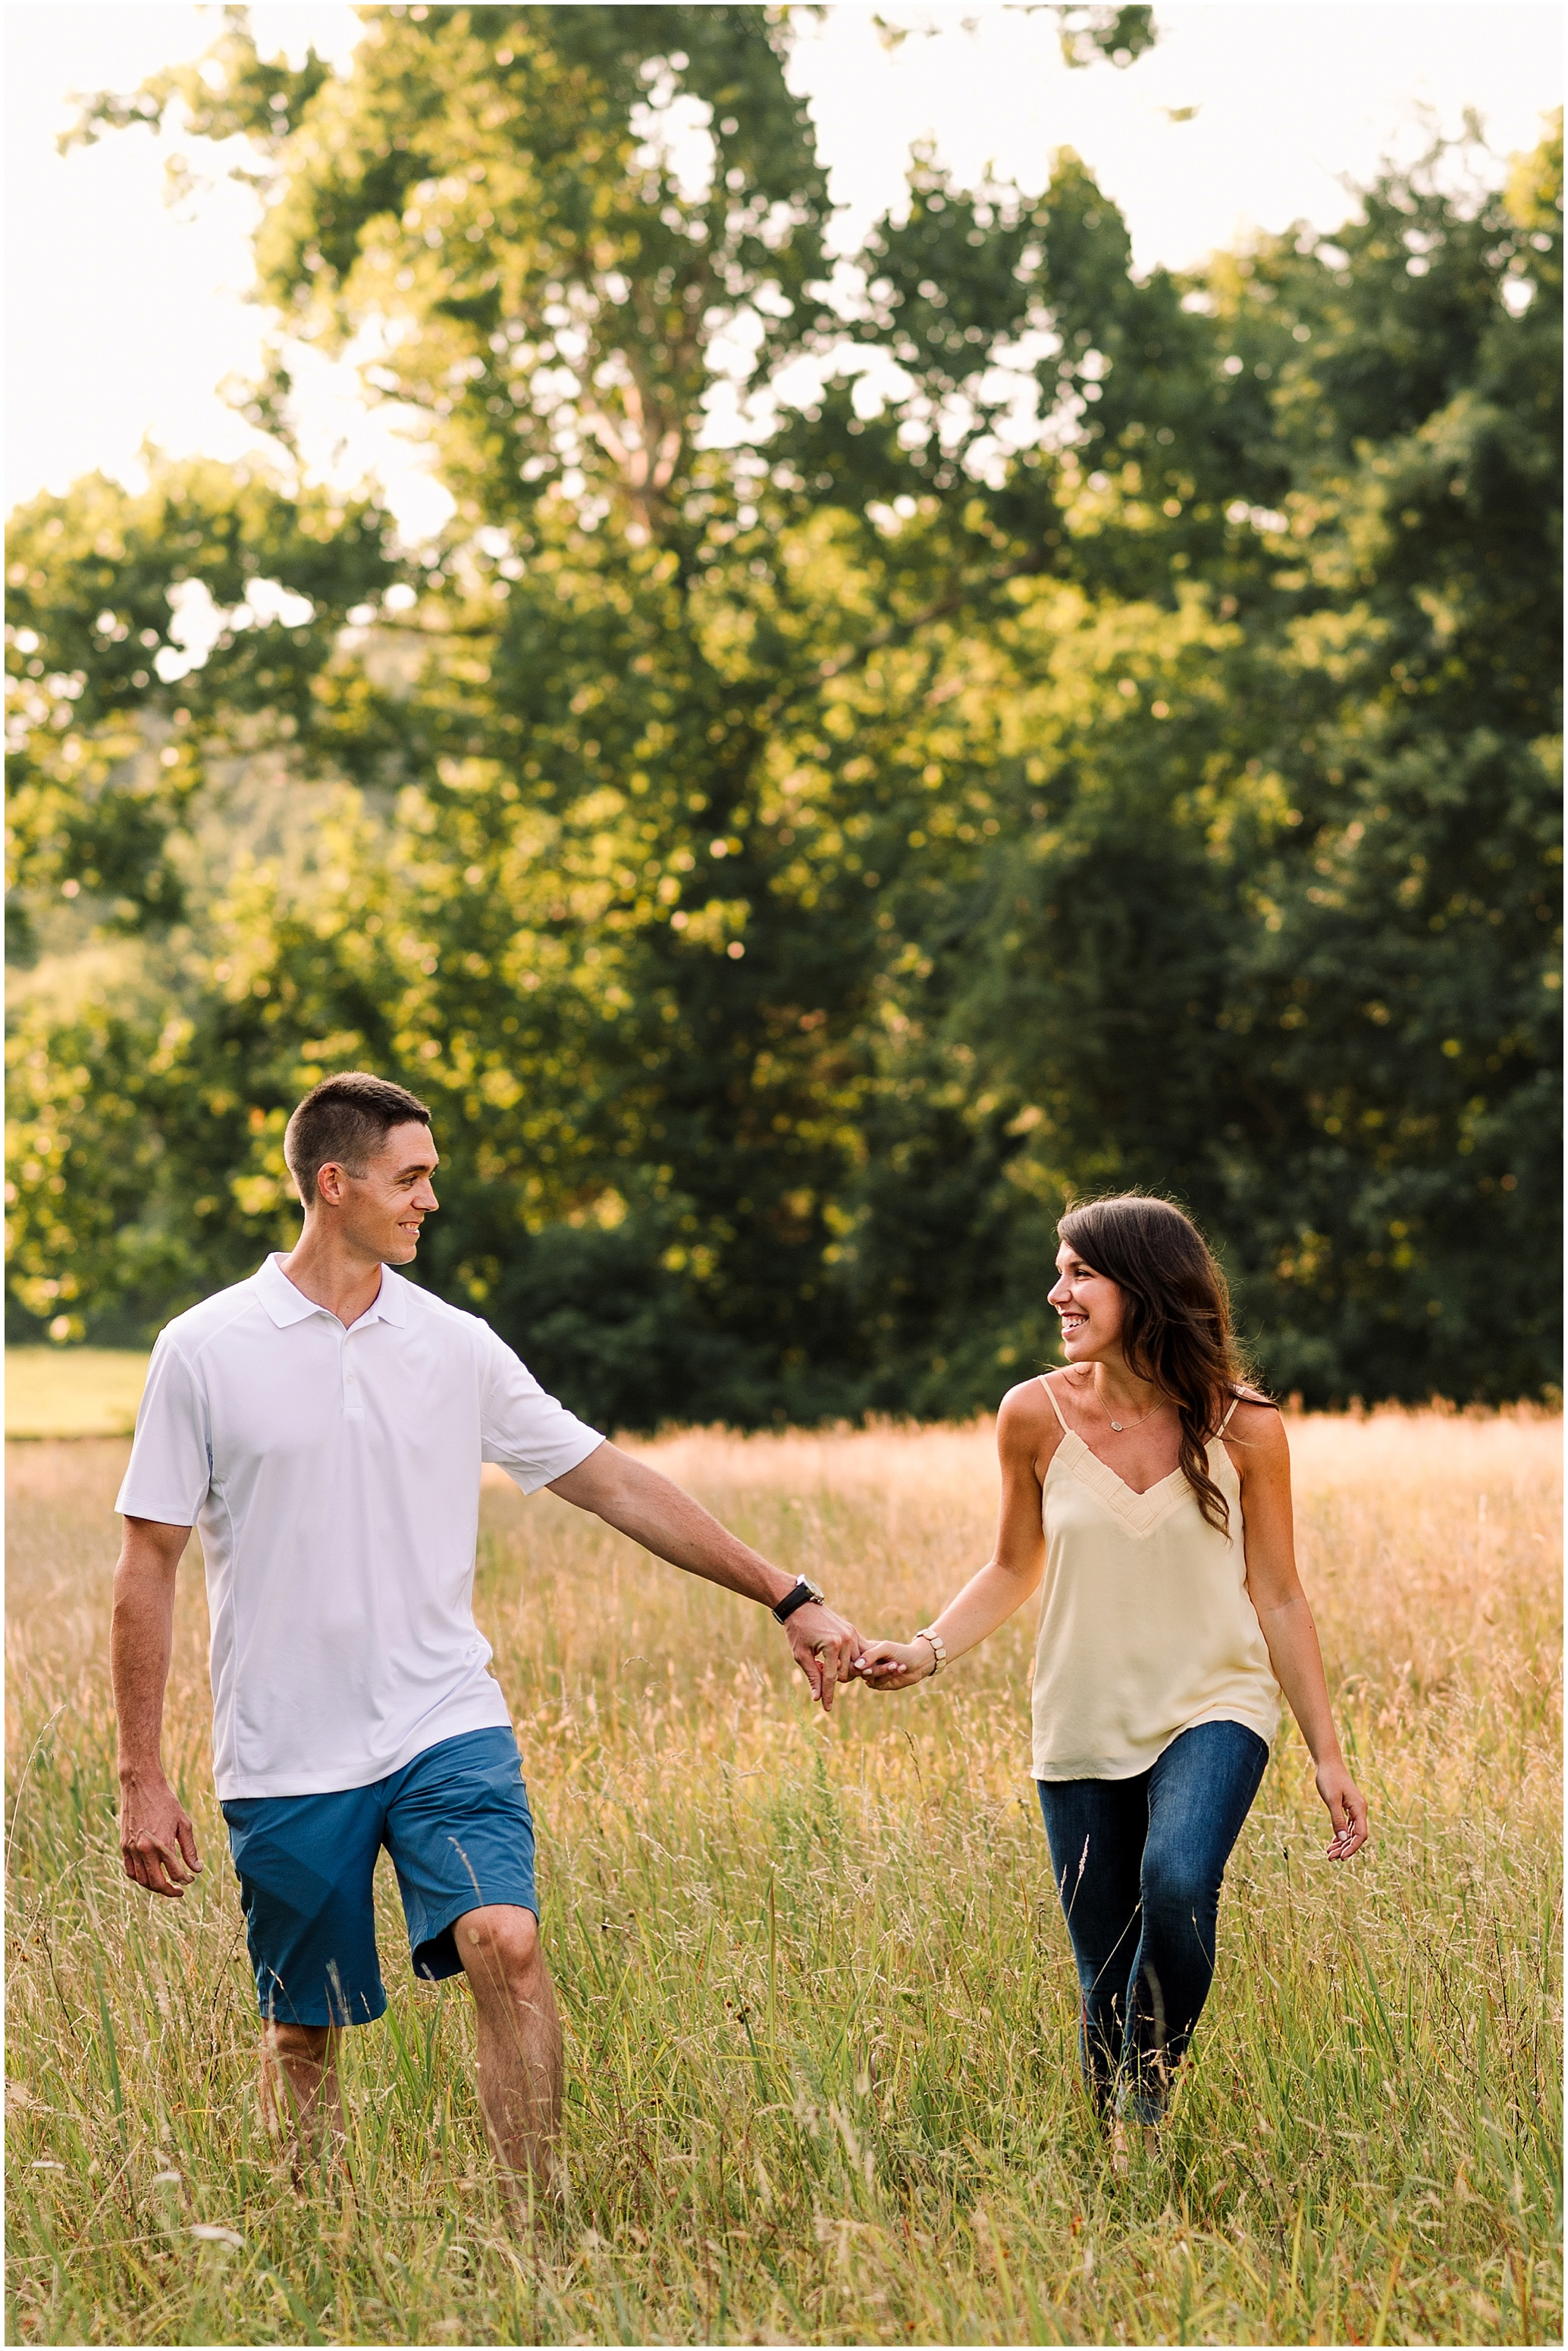 Hannah Leigh Photography Edgewater MD Engagement Session_4914.jpg